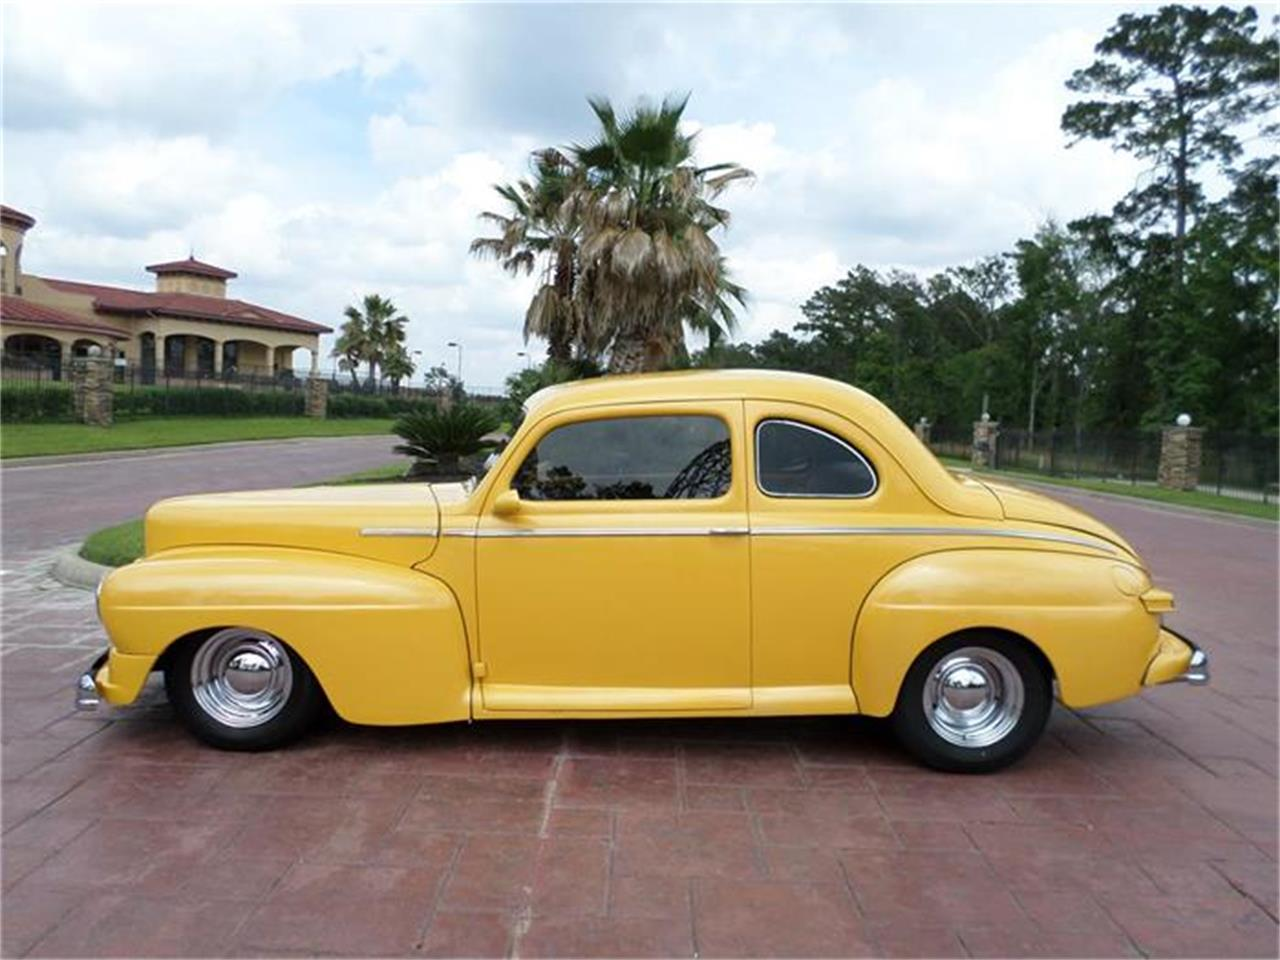 Large Picture of Classic '48 Mercury 2-Dr Coupe located in Conroe Texas - $24,988.00 Offered by Texas Trucks and Classics - BHFM